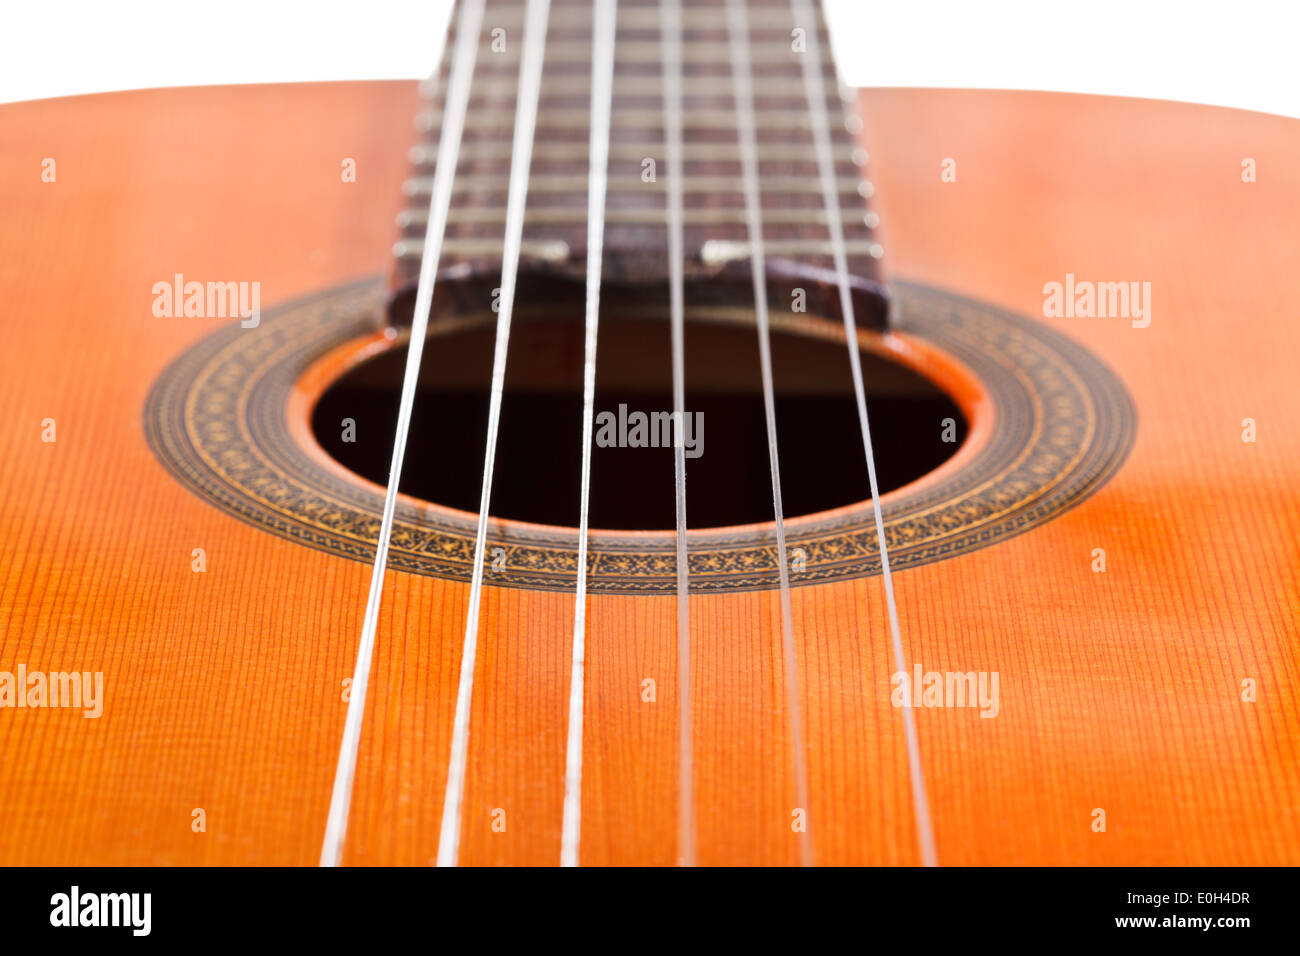 nylon strings stock photos nylon strings stock images alamy. Black Bedroom Furniture Sets. Home Design Ideas